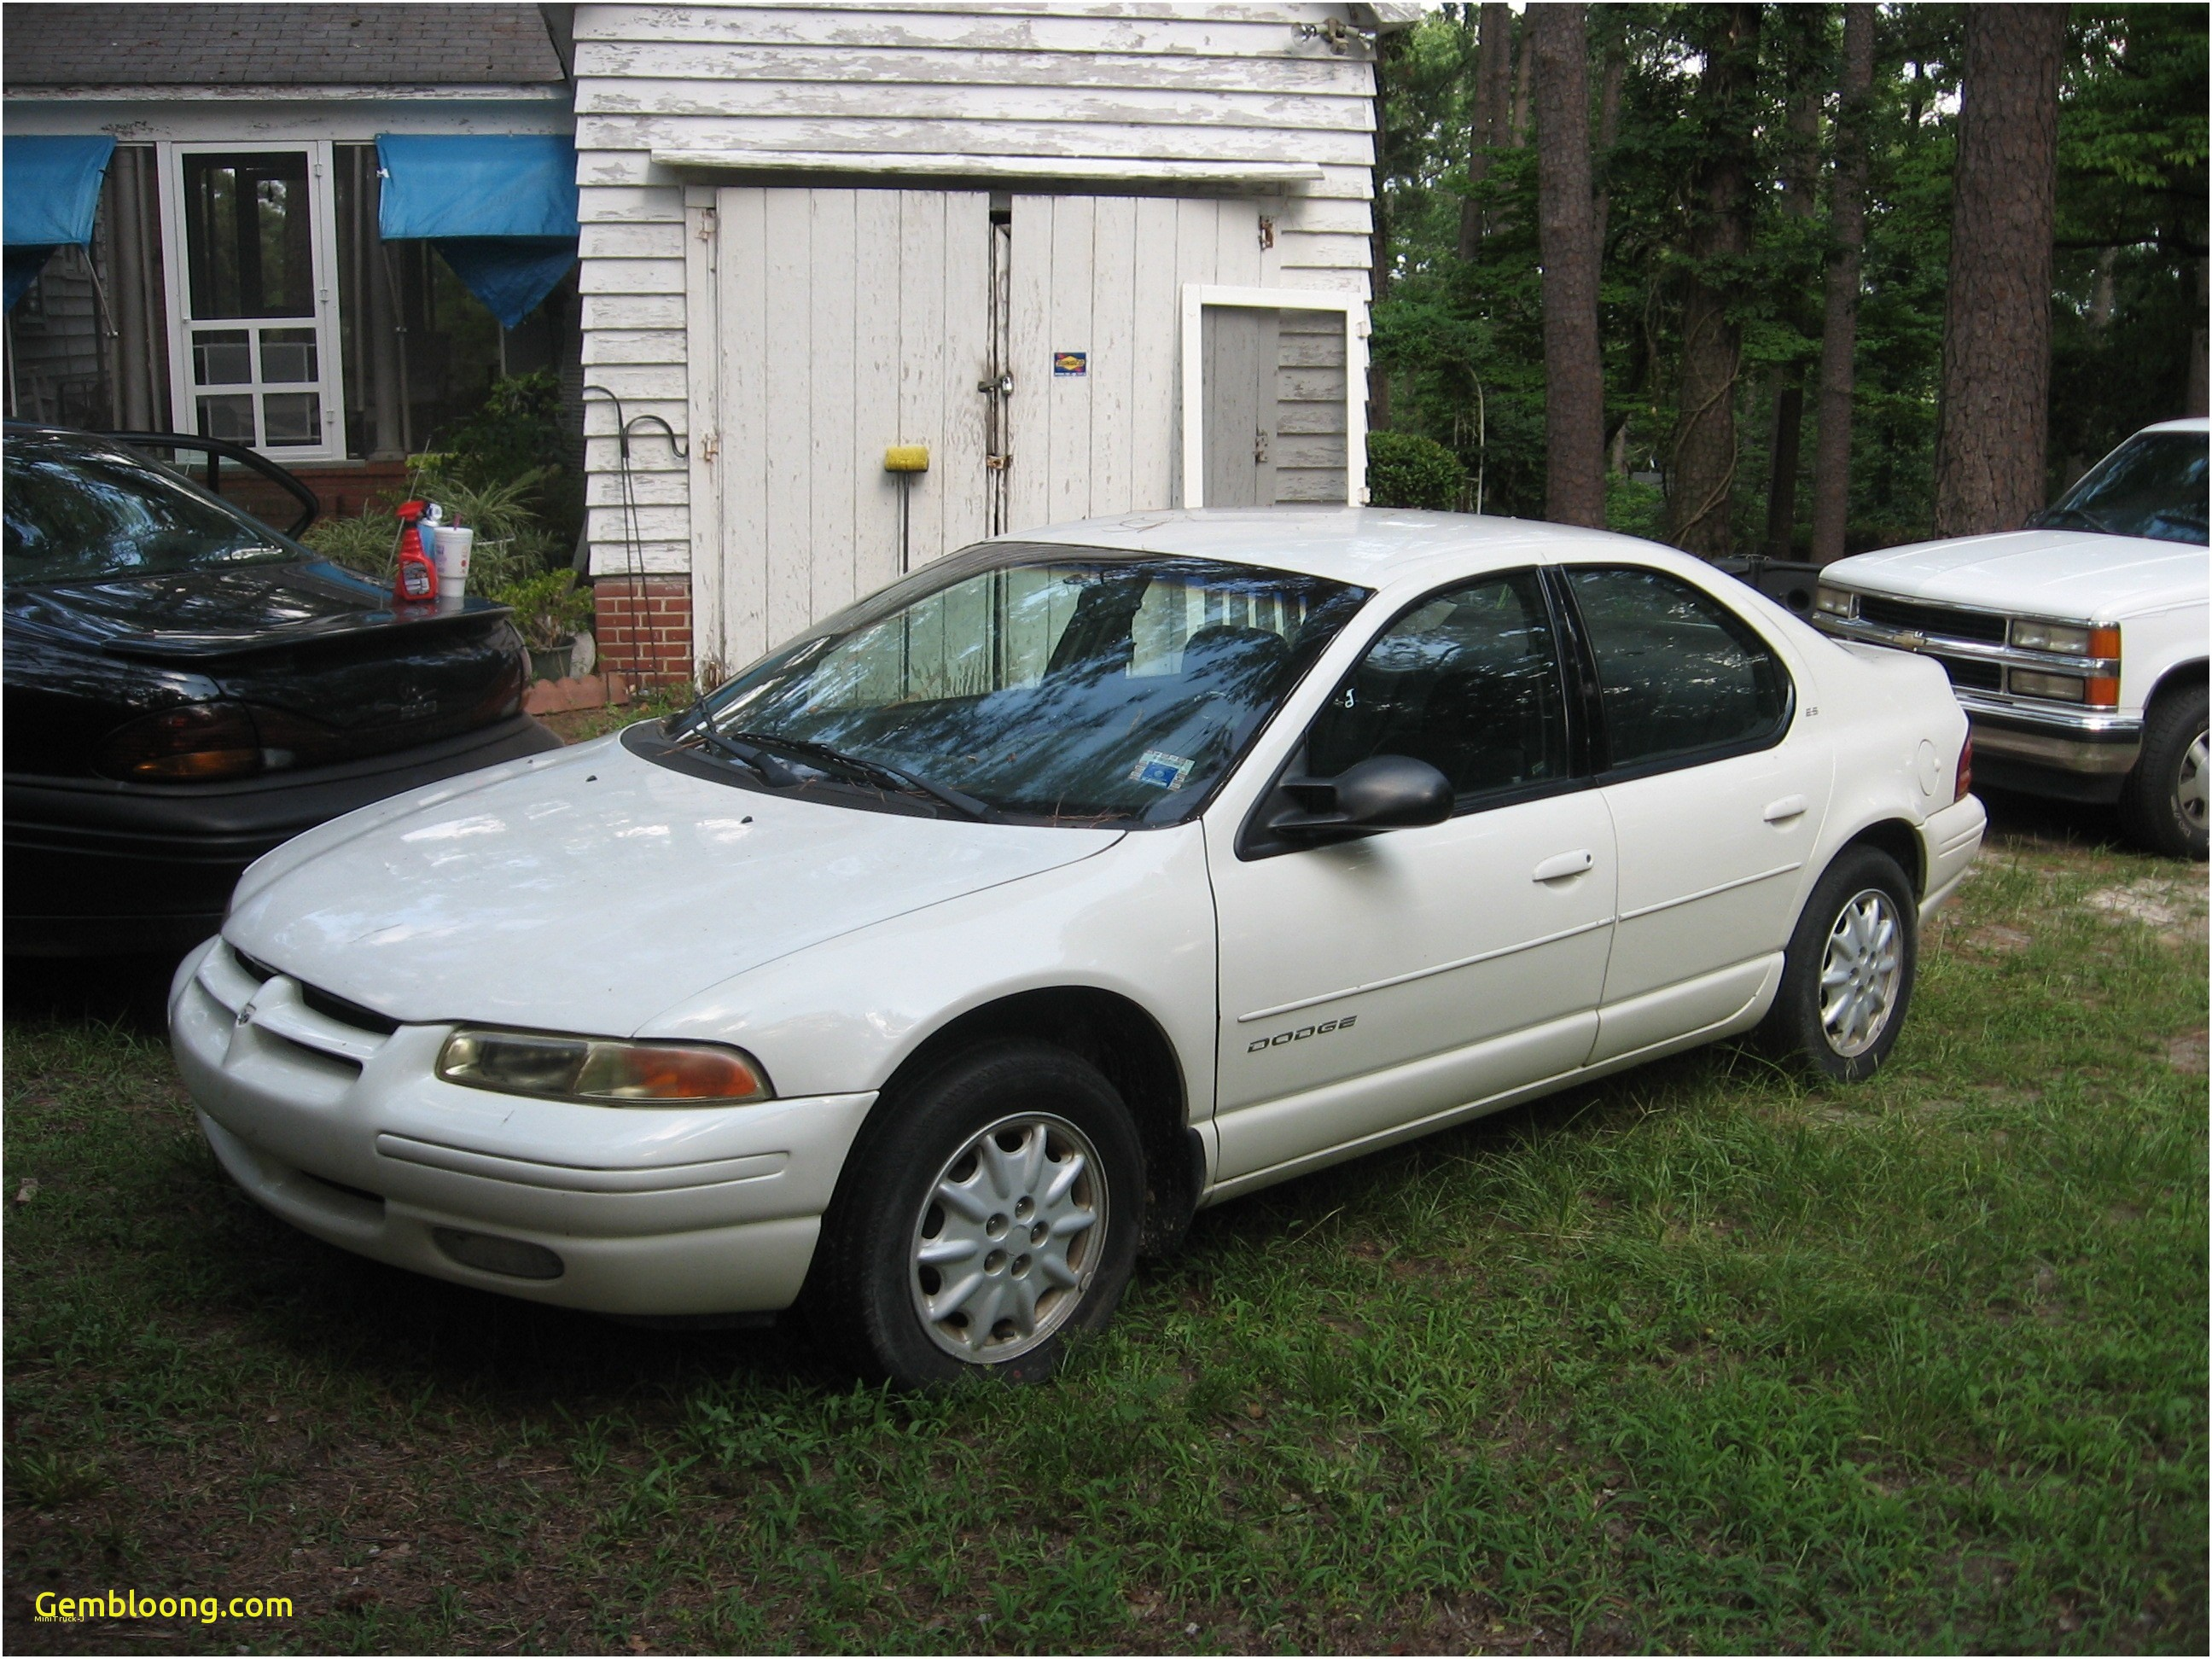 Cheap Cars for Sale Near Me Craigslist Inspirational Cars for Sale Near Me Craigslist Awesome Craigslist Used Cars In New